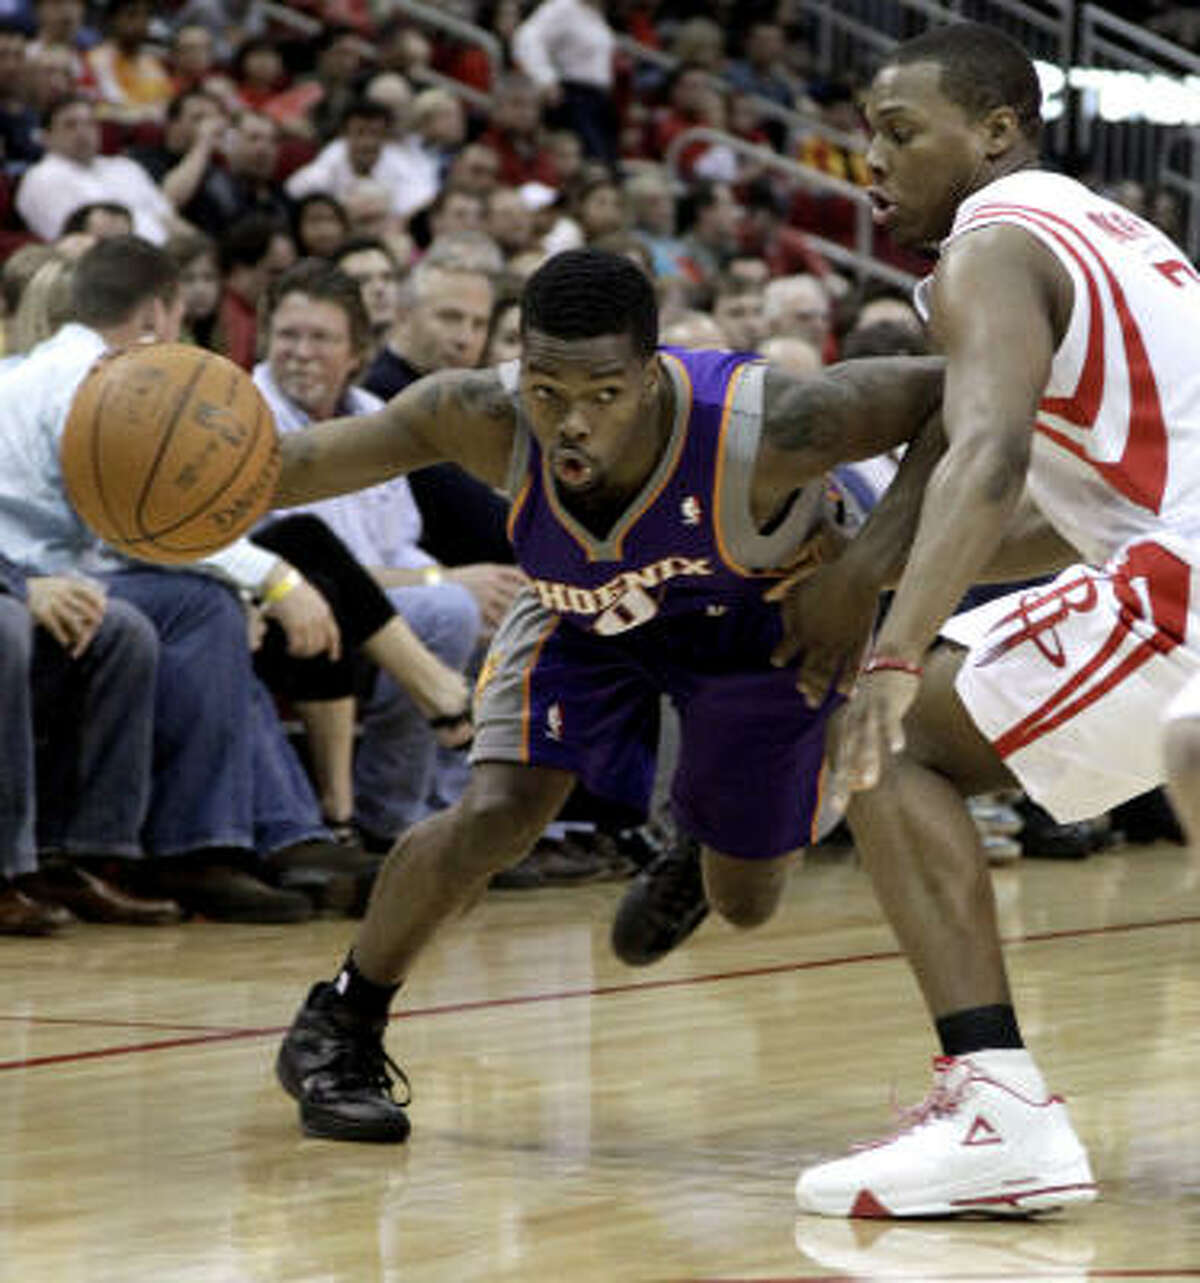 Suns' Aaron Brooks (0) drives around Rockets' Kyle Lowry, right.